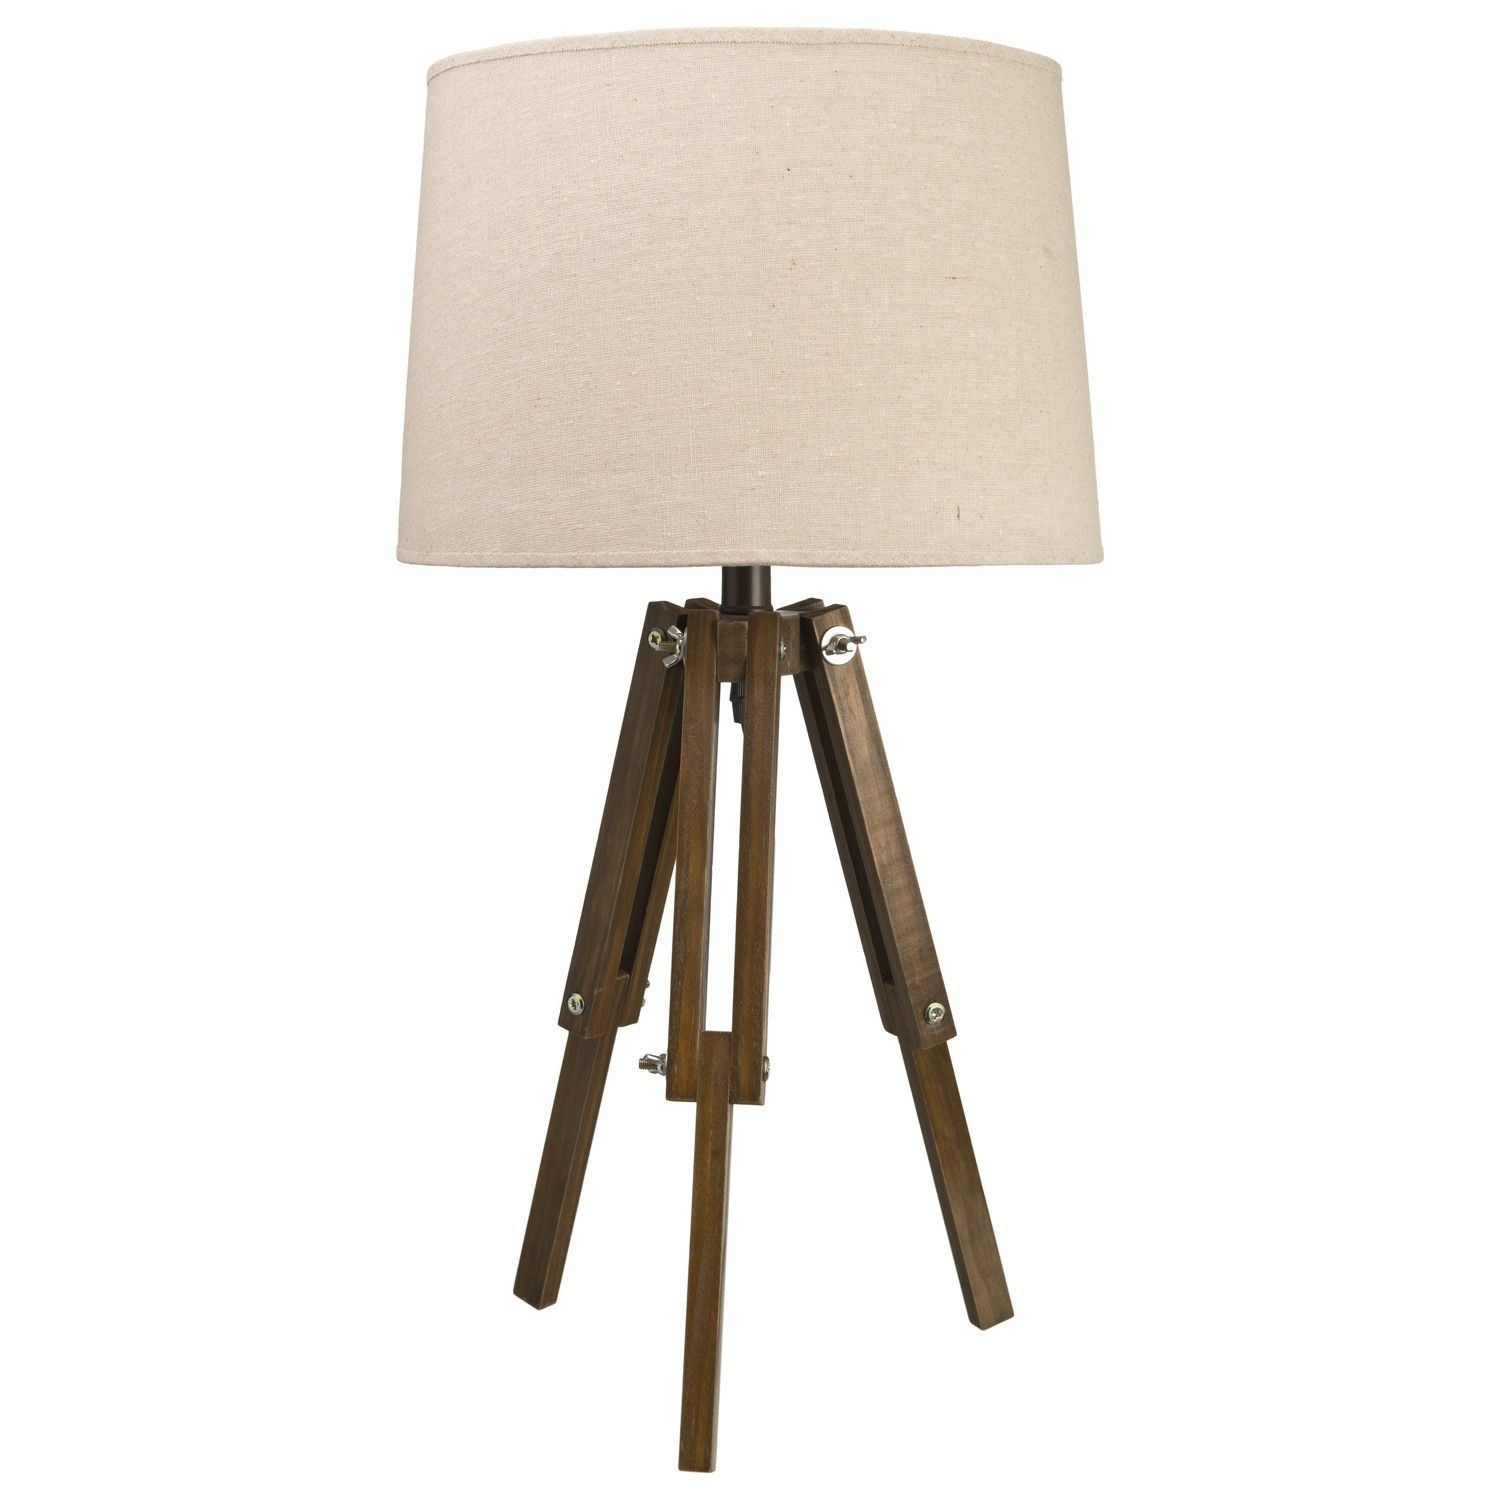 Nice Colonial Vintage Style Tripod Table Lamp Natural Light Shade Dark Wood Legs  NEW